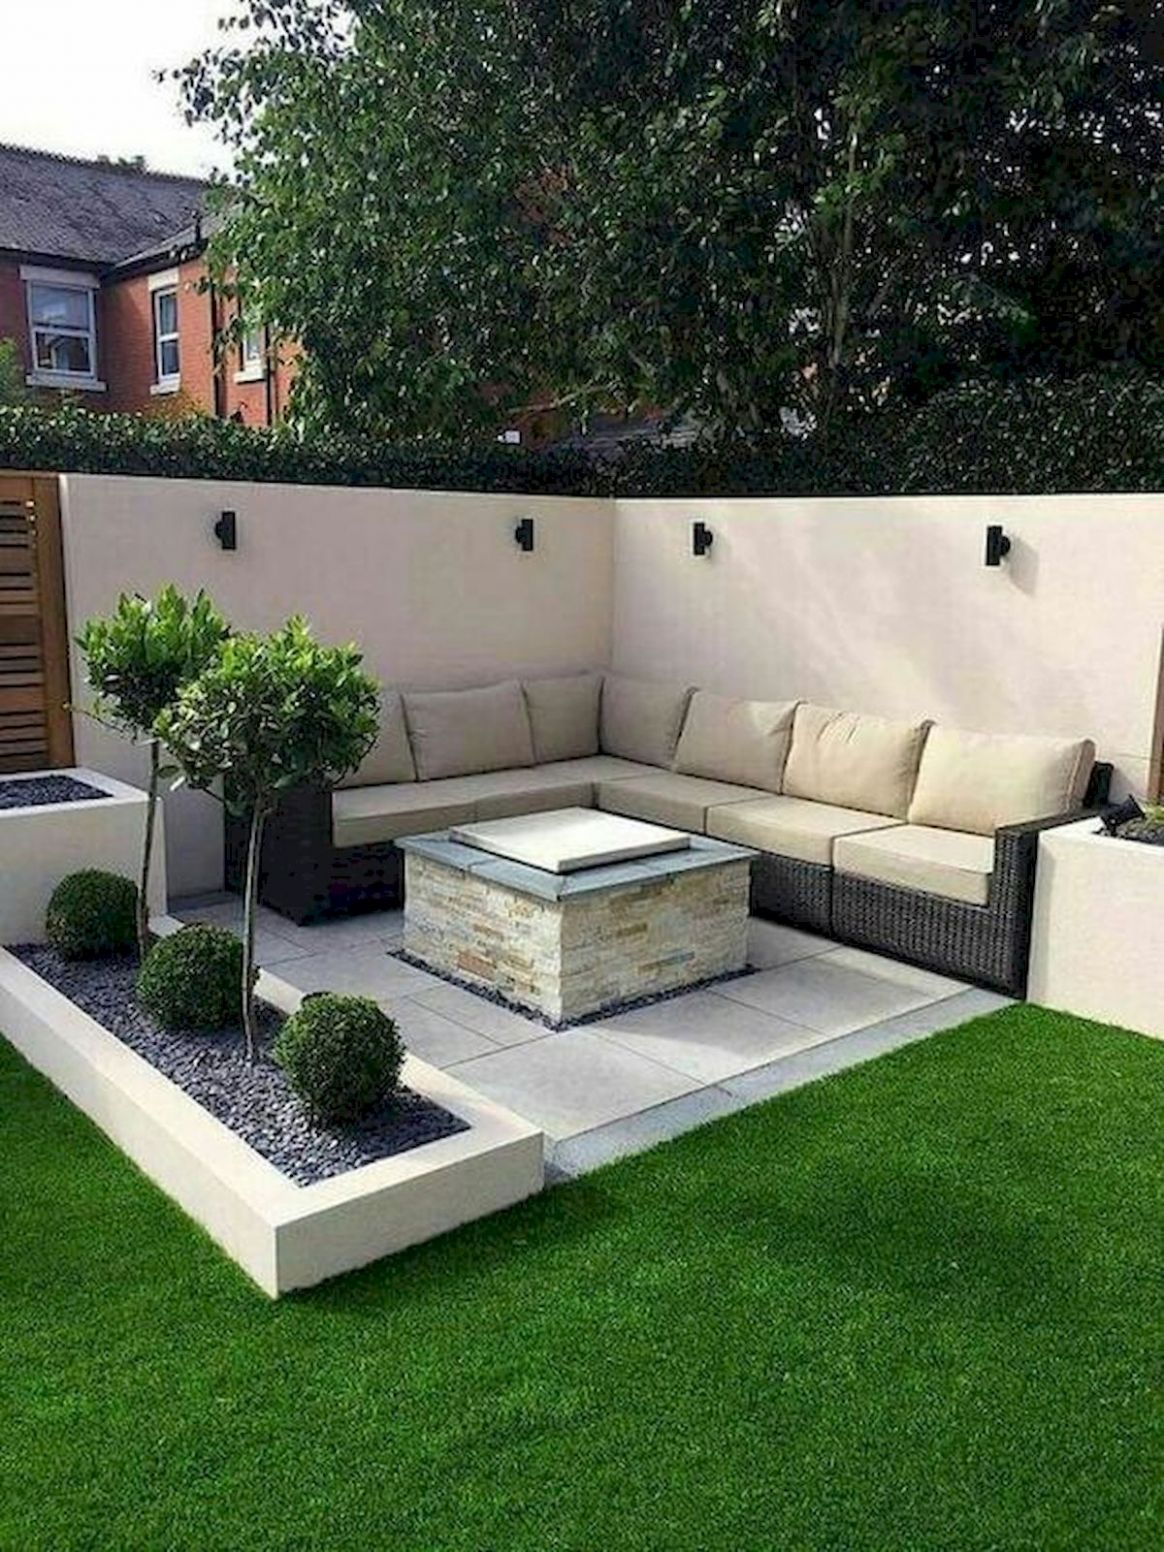 11 Fabulous Modern Garden Designs Ideas For Front Yard and ..